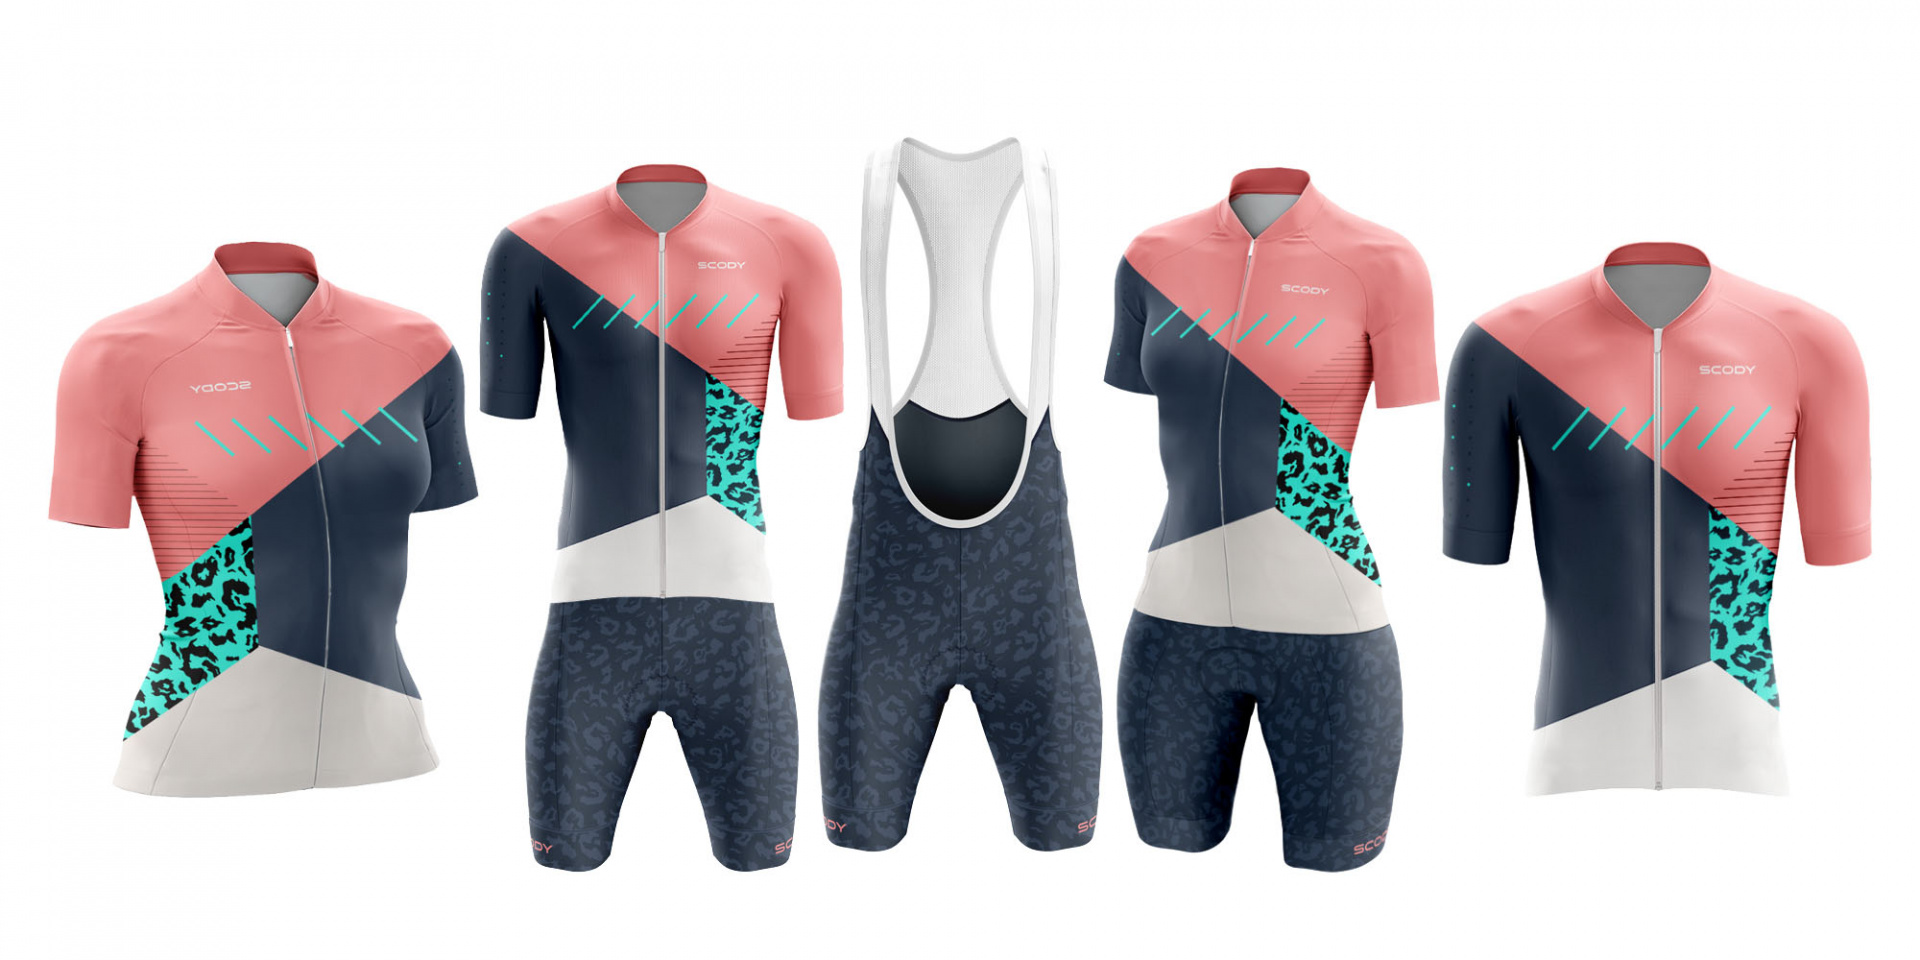 WILD-LIMITED-EDITION-OPTIMISE-CYCLING-JERSEY-AND-CYCLING-BIB-CYCLING_CLOTHING.jpg